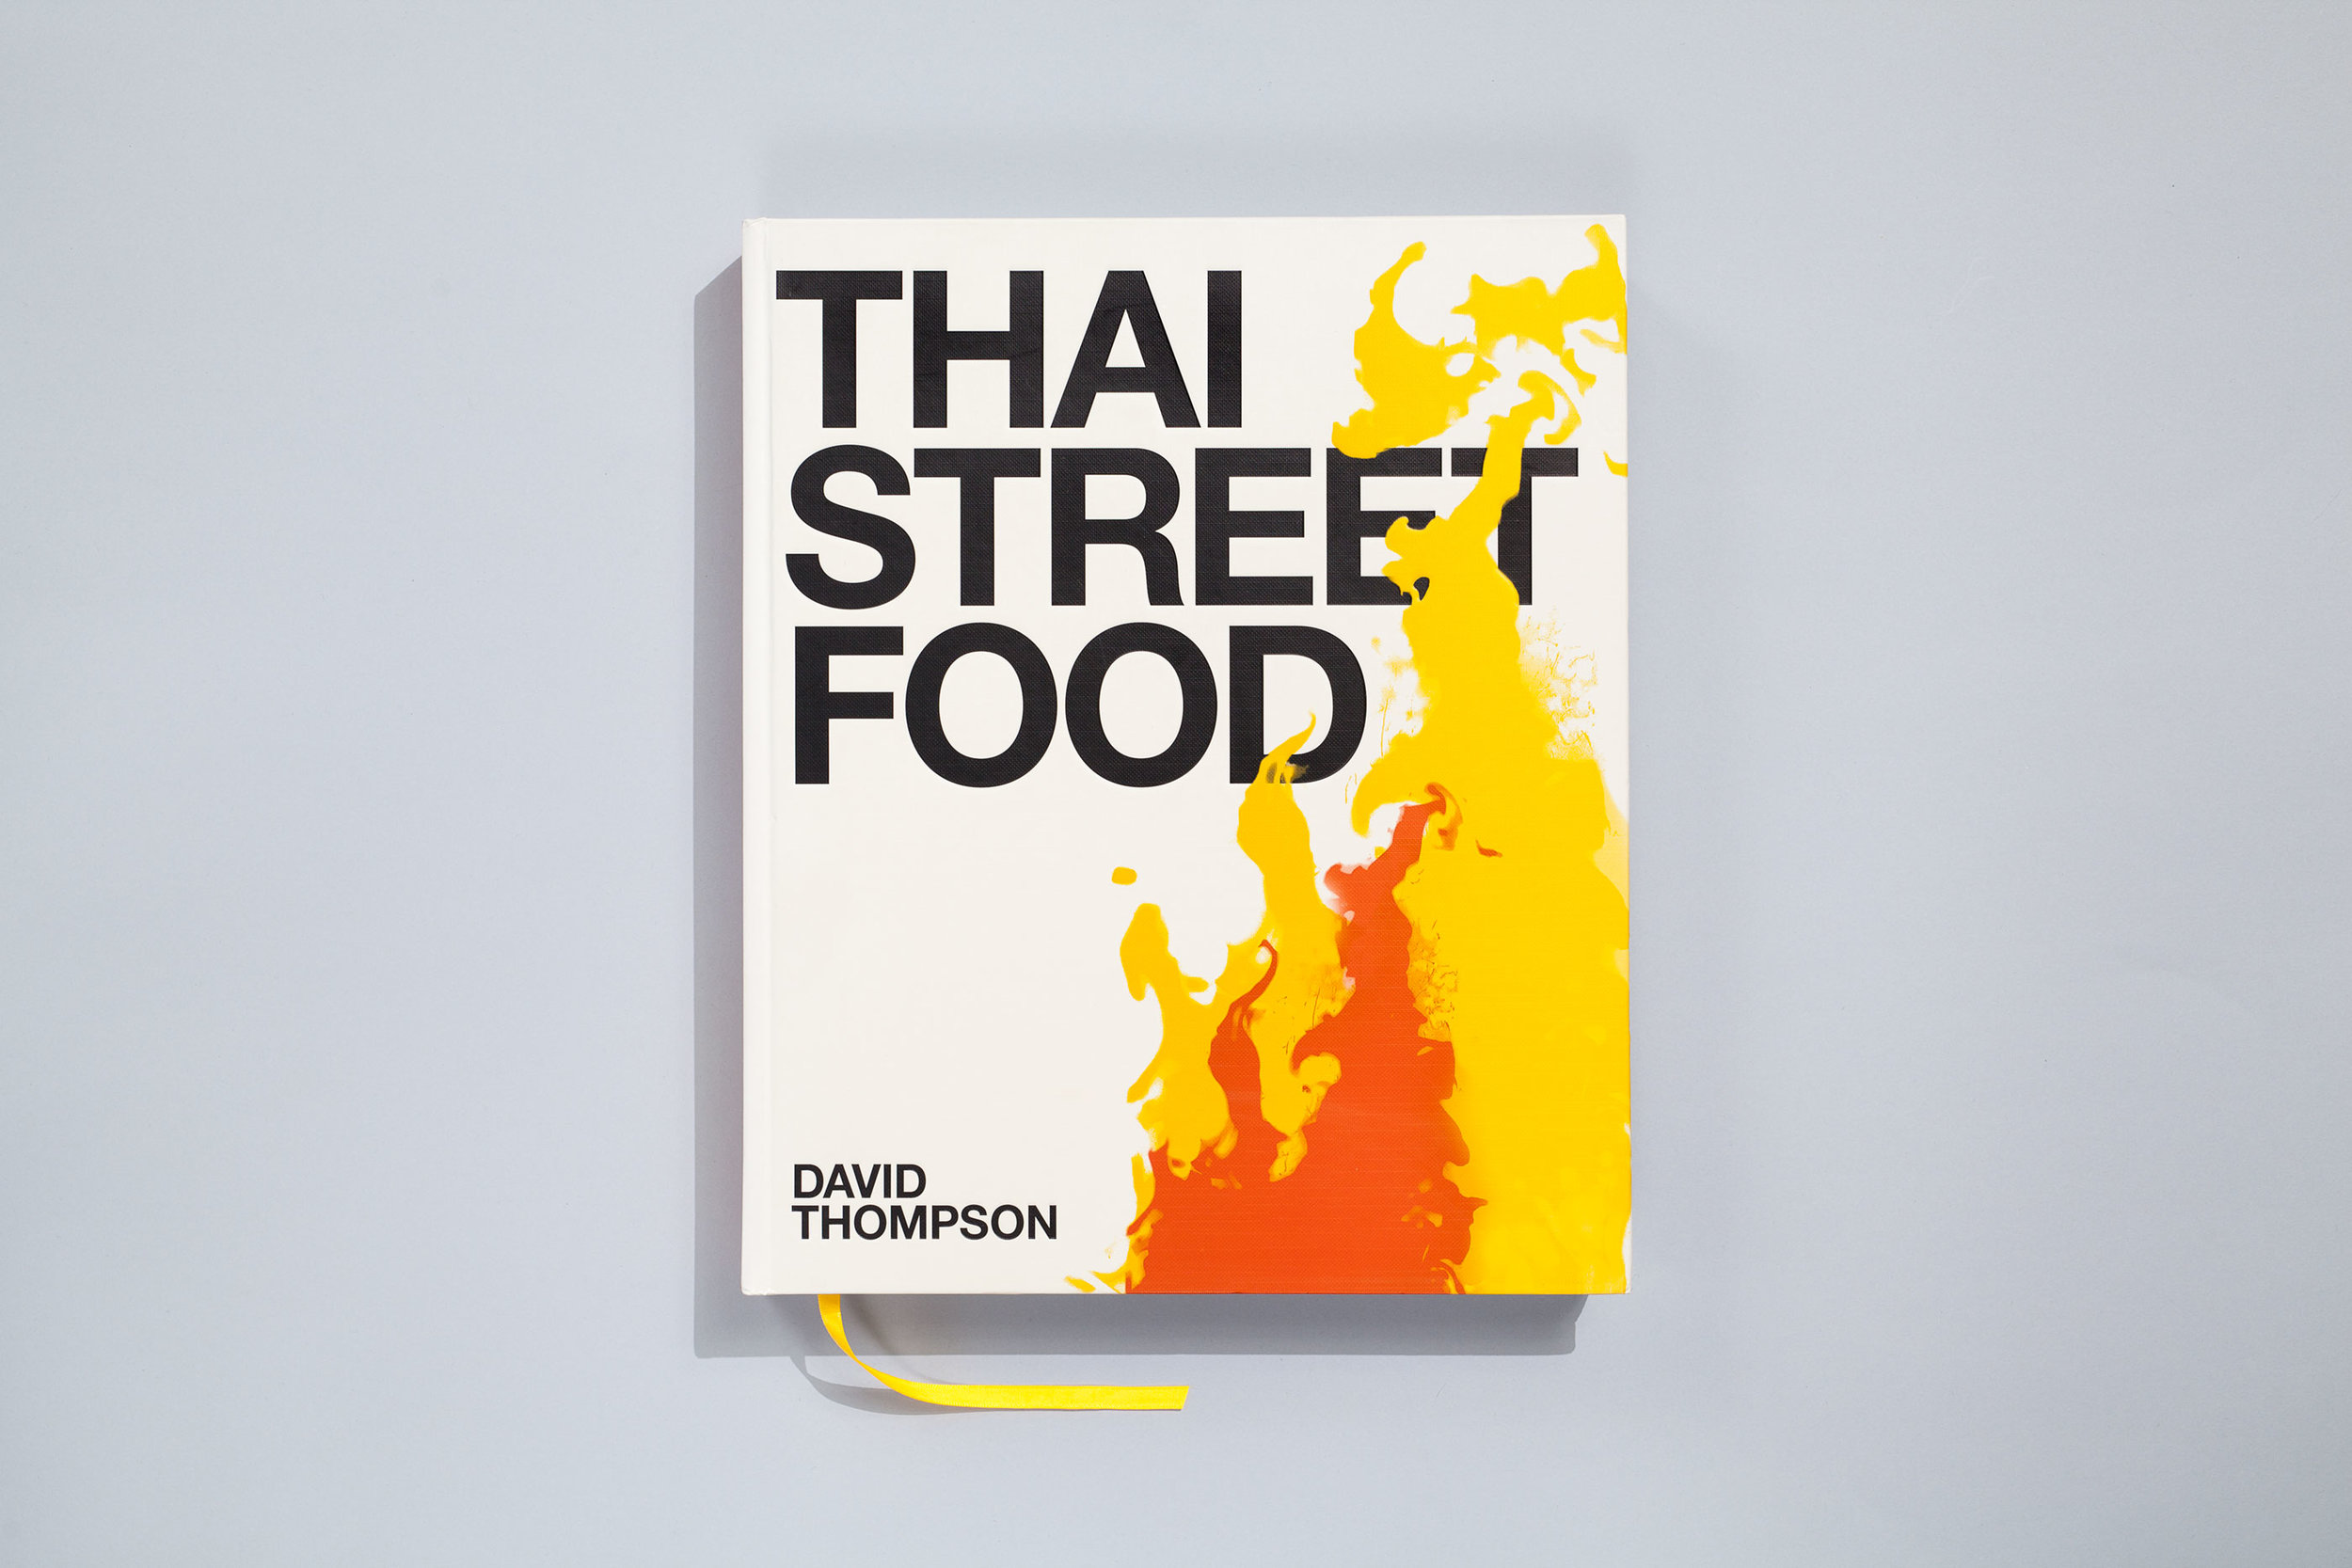 Title – Thai Street Food Author – David Thompson Designer – Daniel New Photographer – Earl Carter Publisher – Lantern, Penguin Books  2009 Gourmand World Cookbook Awards + Best Cookbook + Best Foreign Cookery (Australia) 2009 Kinokuniya Book Awards + Best Cookbook of the Year